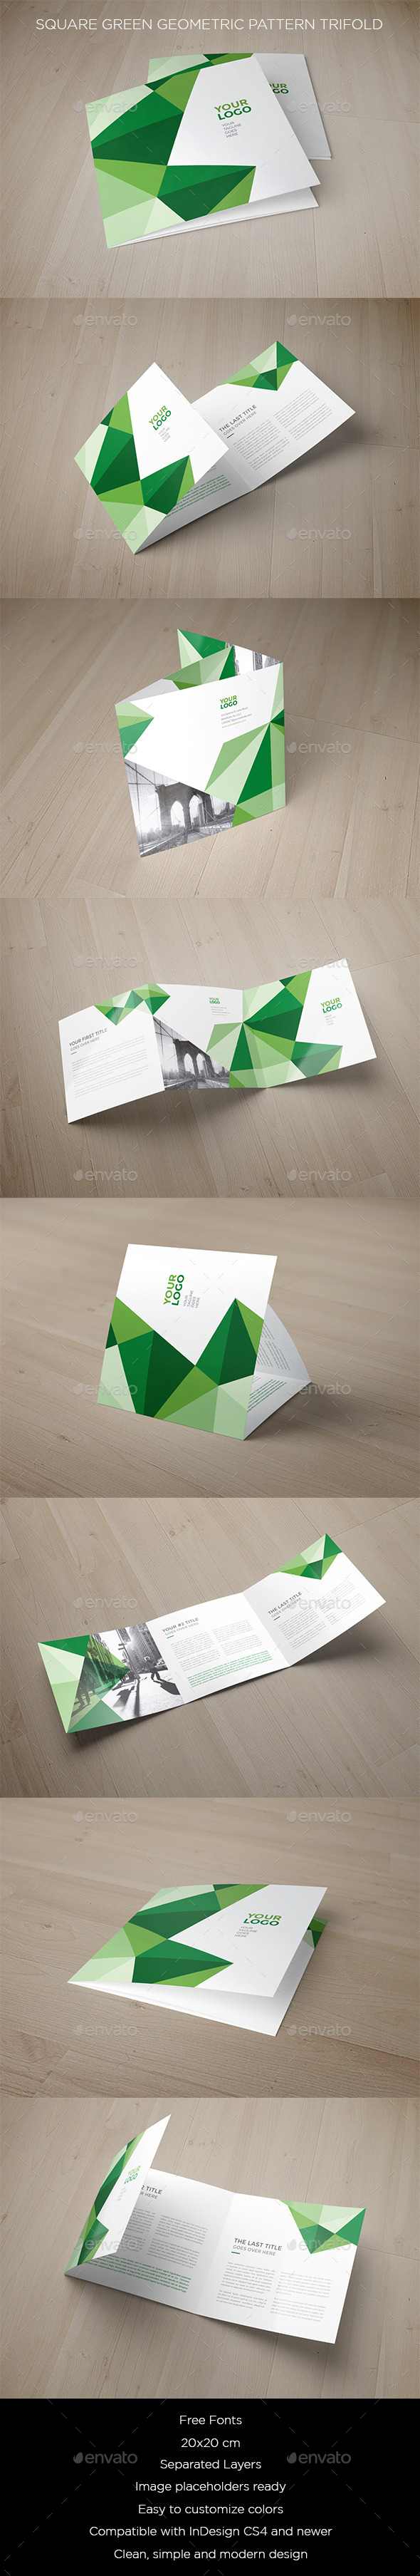 Square Green Geometric Pattern Trifold - Brochures Print Templates